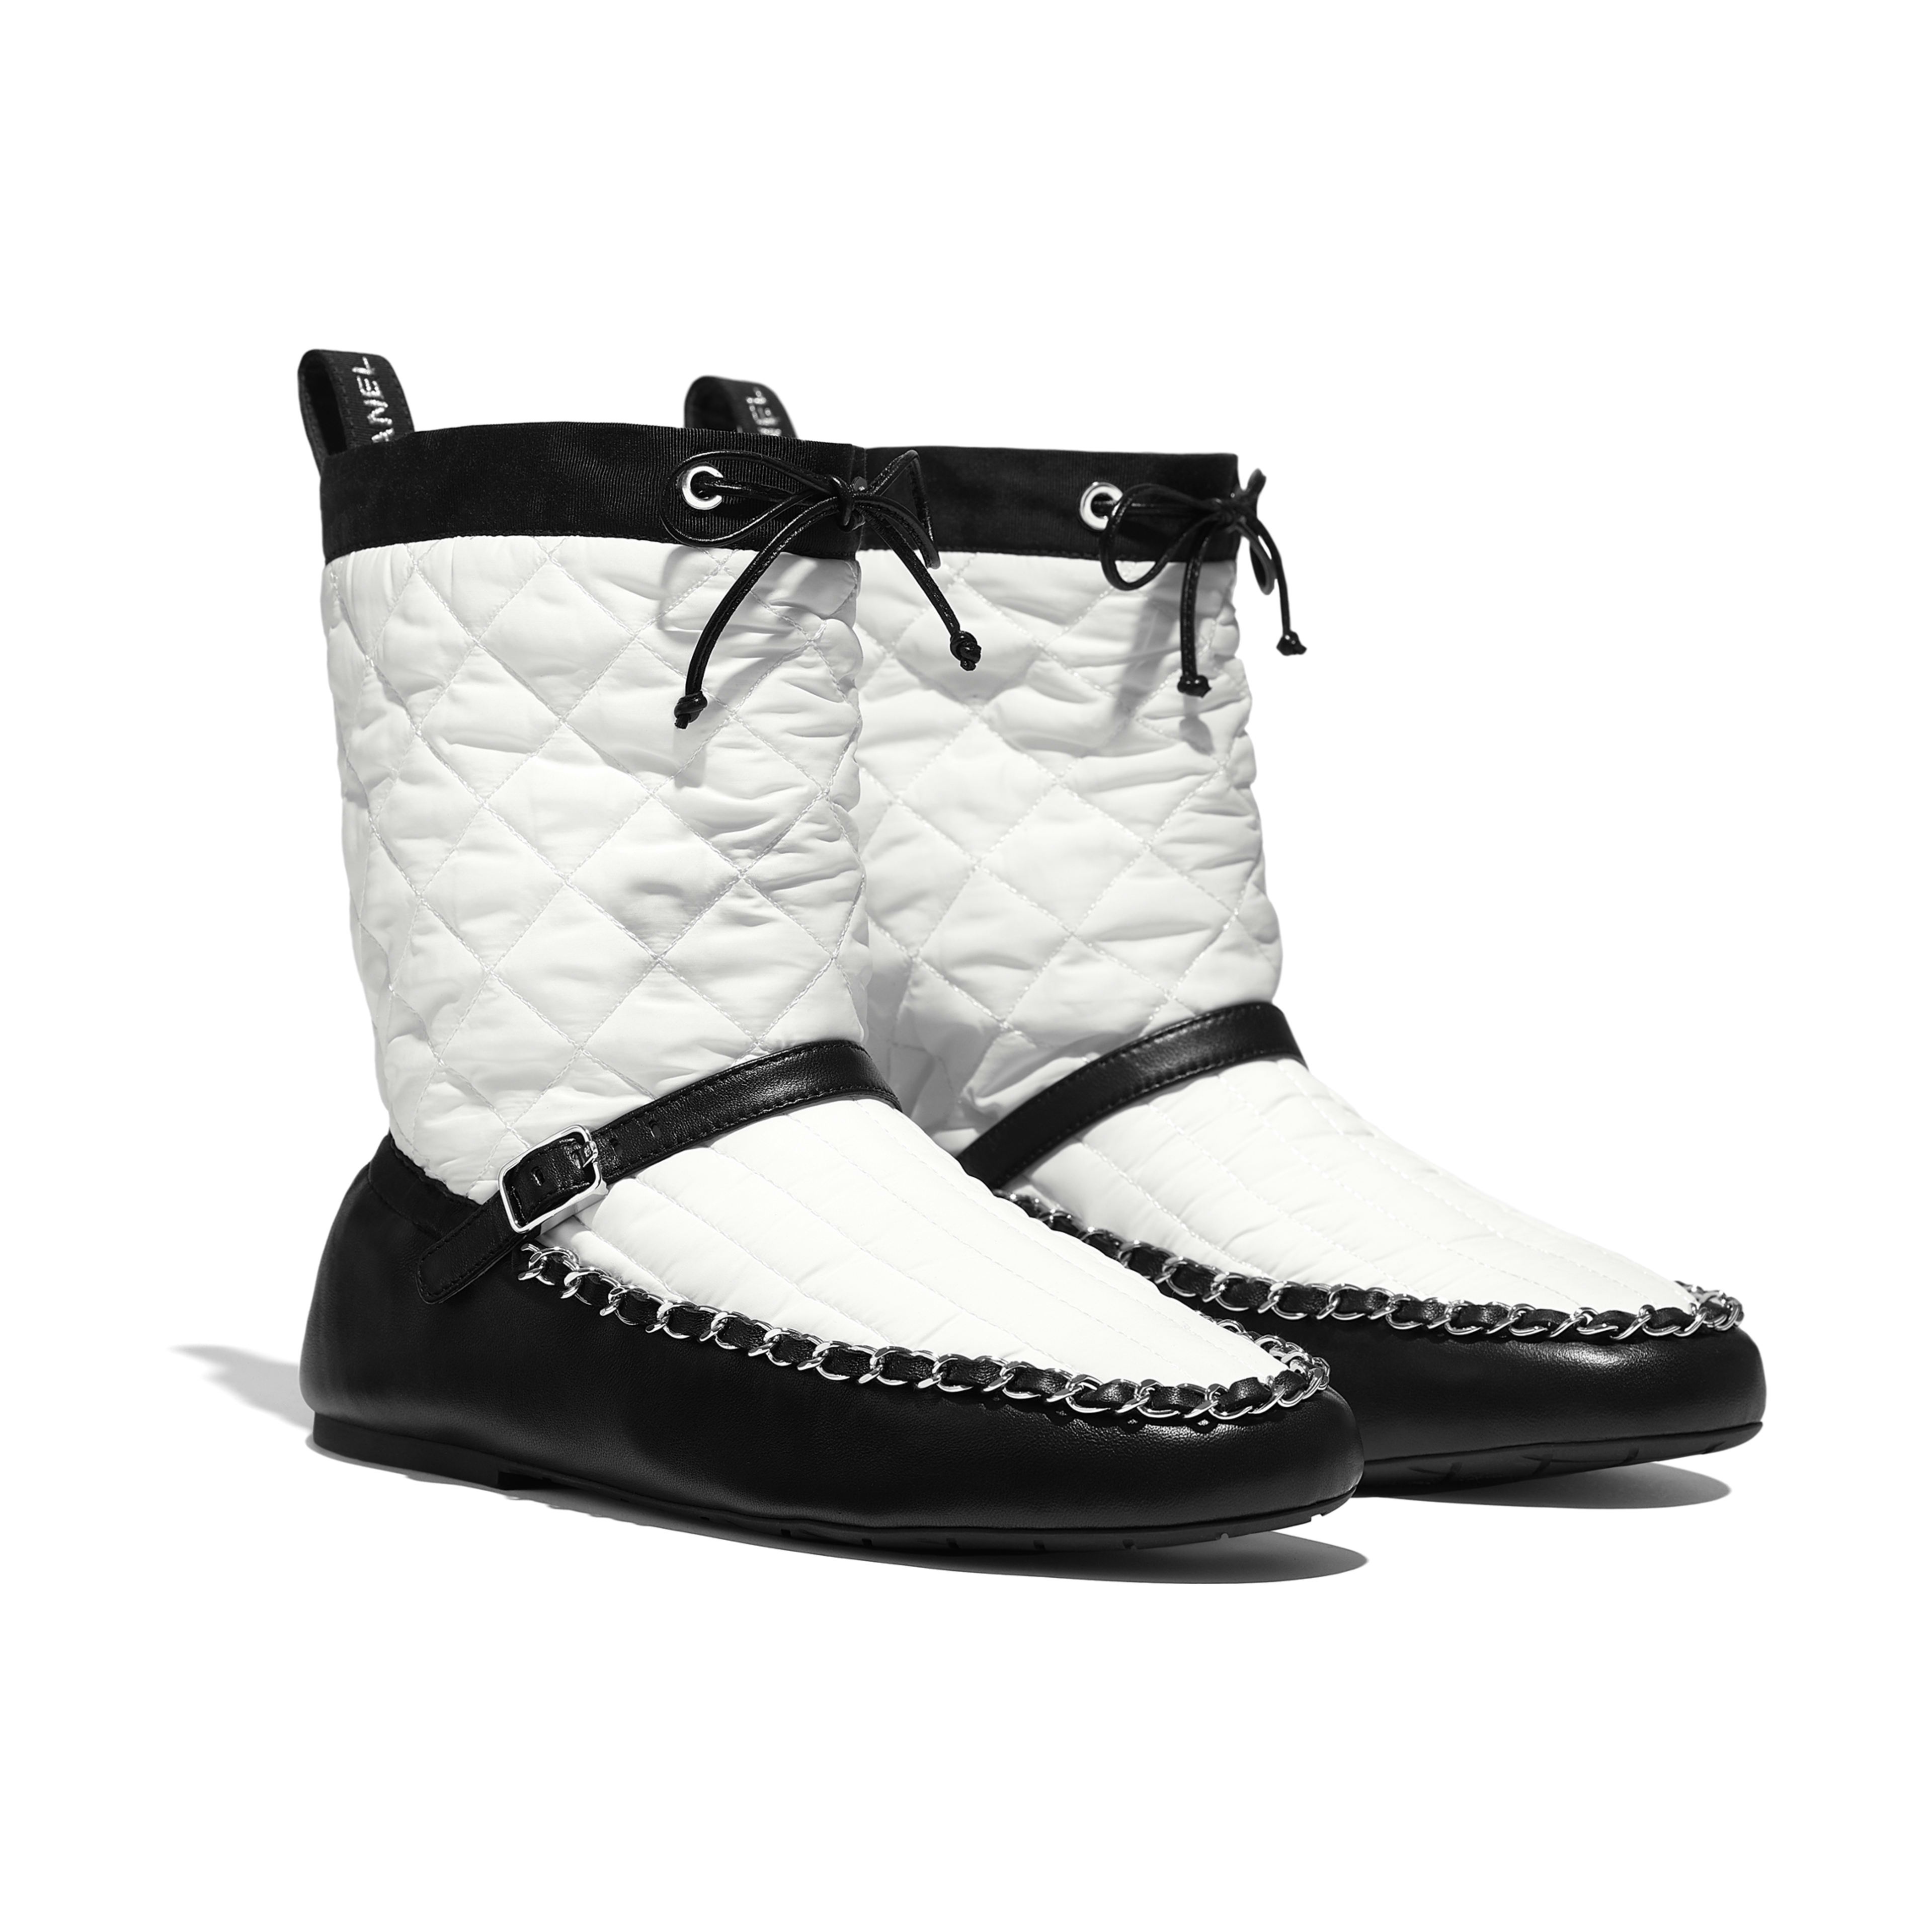 Ankle Boots - White & Black - Fabric & Lambskin - Alternative view - see full sized version